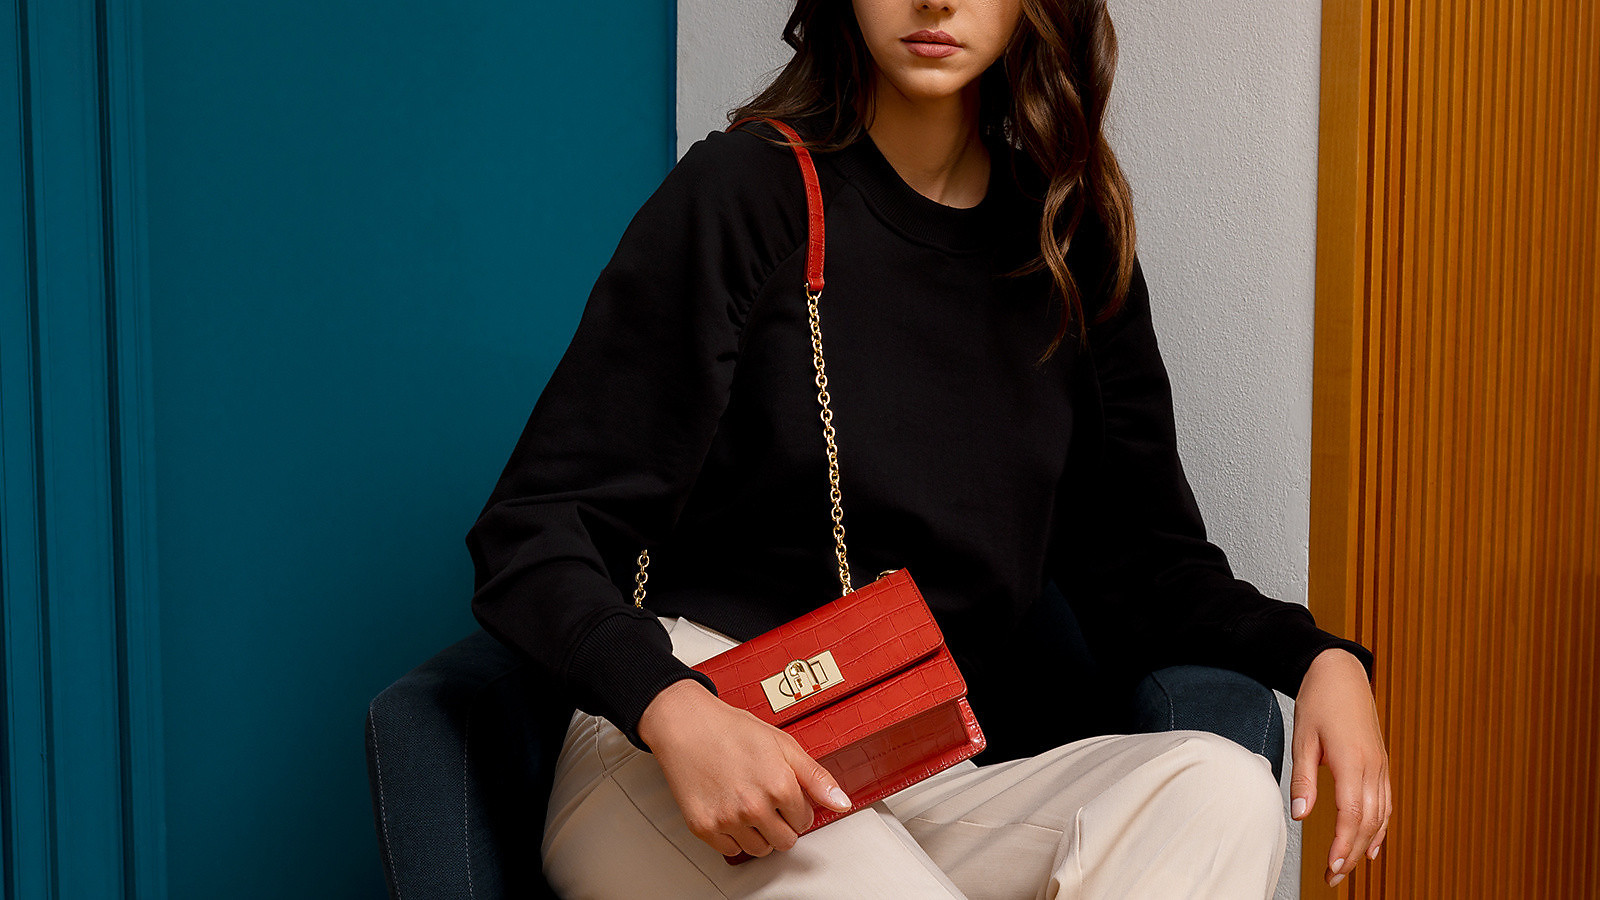 A white girl wearing beige pant and a black sweater is sitting on an armchair. She is looking in front of her and holding on her shoulder a red Furla 1927. The background is a blue wall and a wooden wall